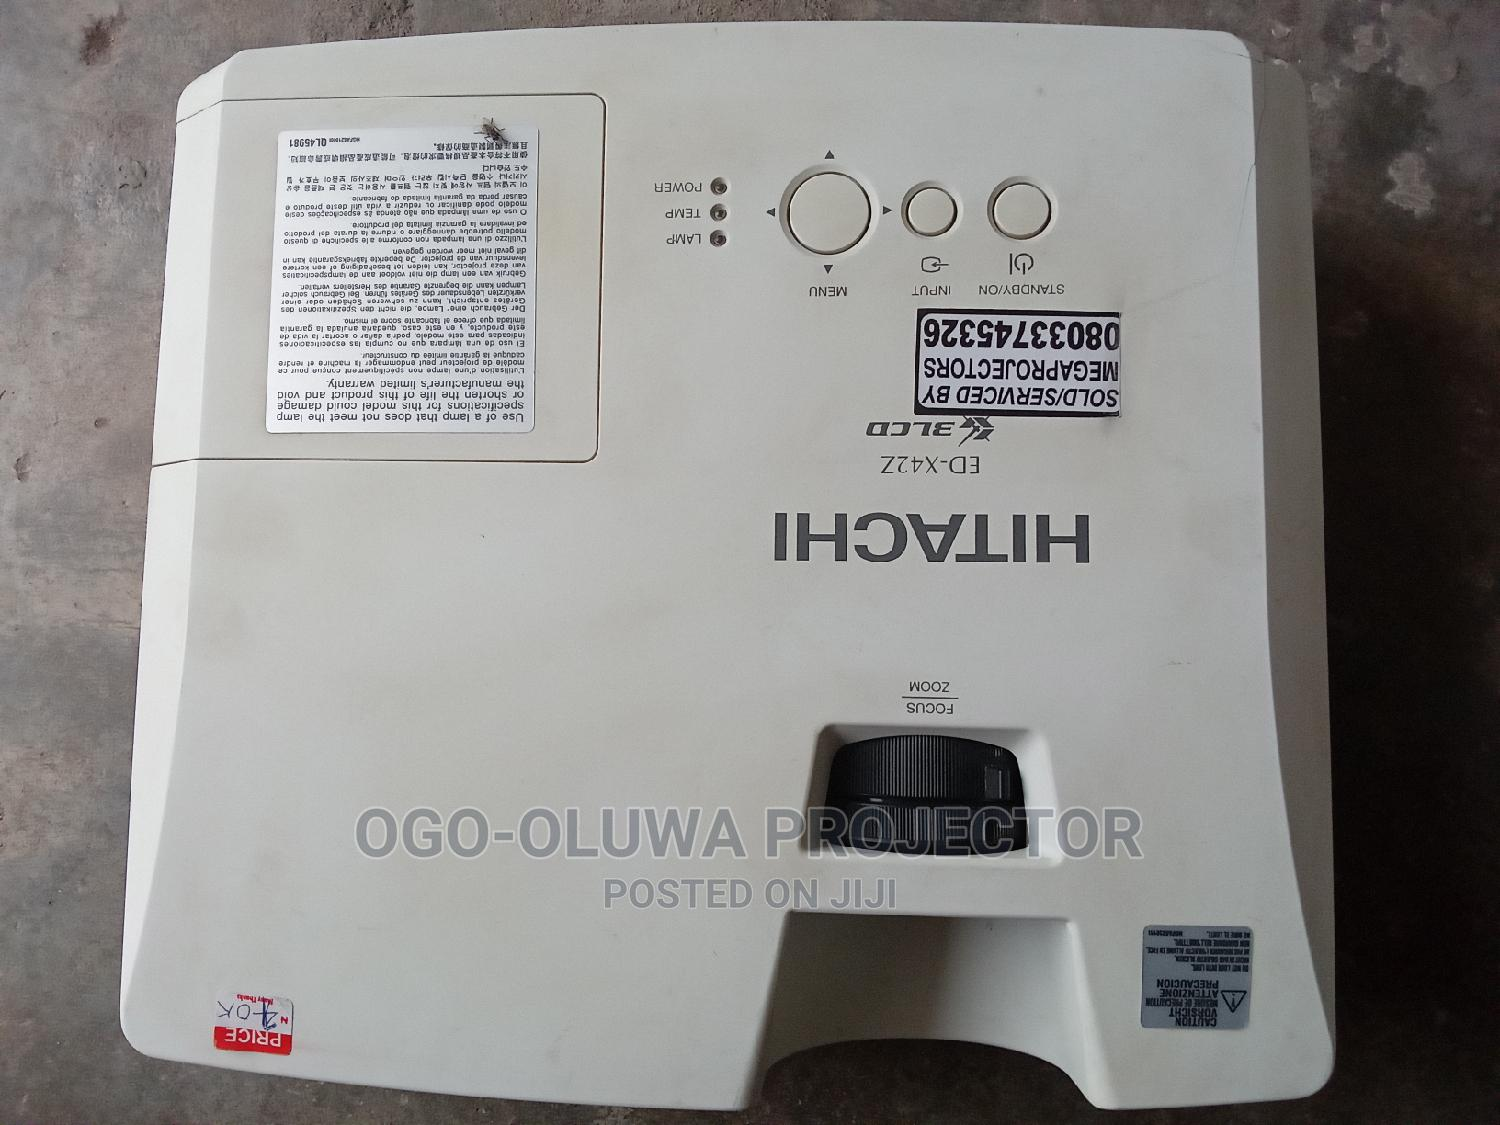 Archive: HITACHI 3lcd Projector Very Clean and Sharp London Used